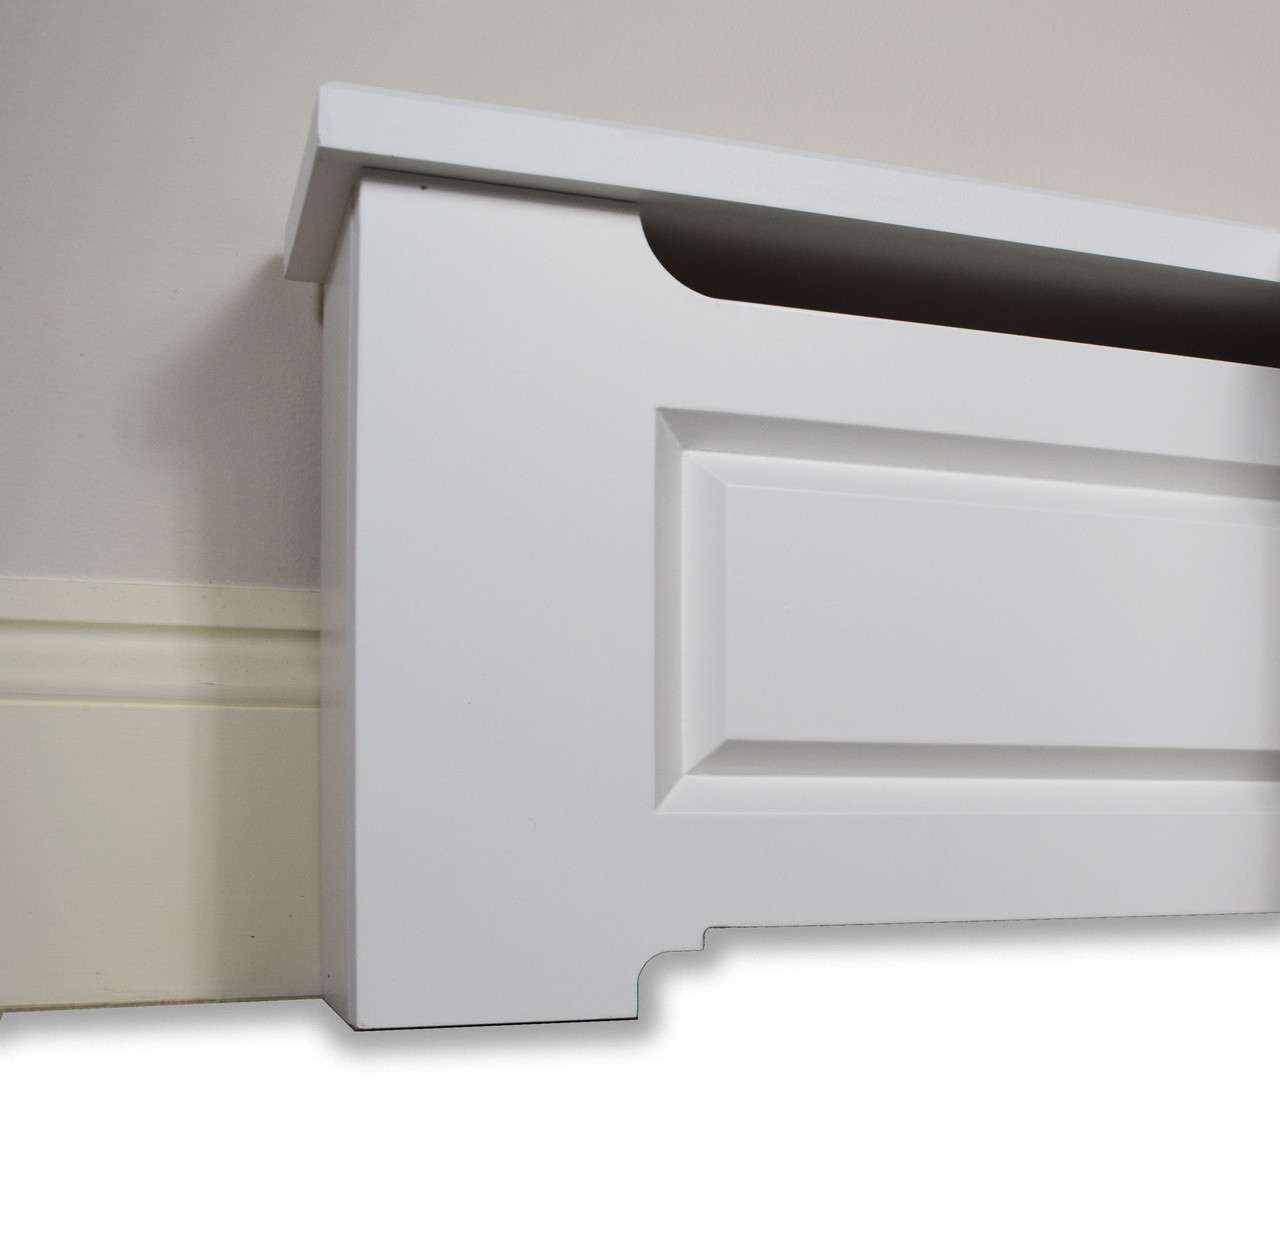 Craftsman Style 5 Ft Wood Baseboard Heater Cover Kit In